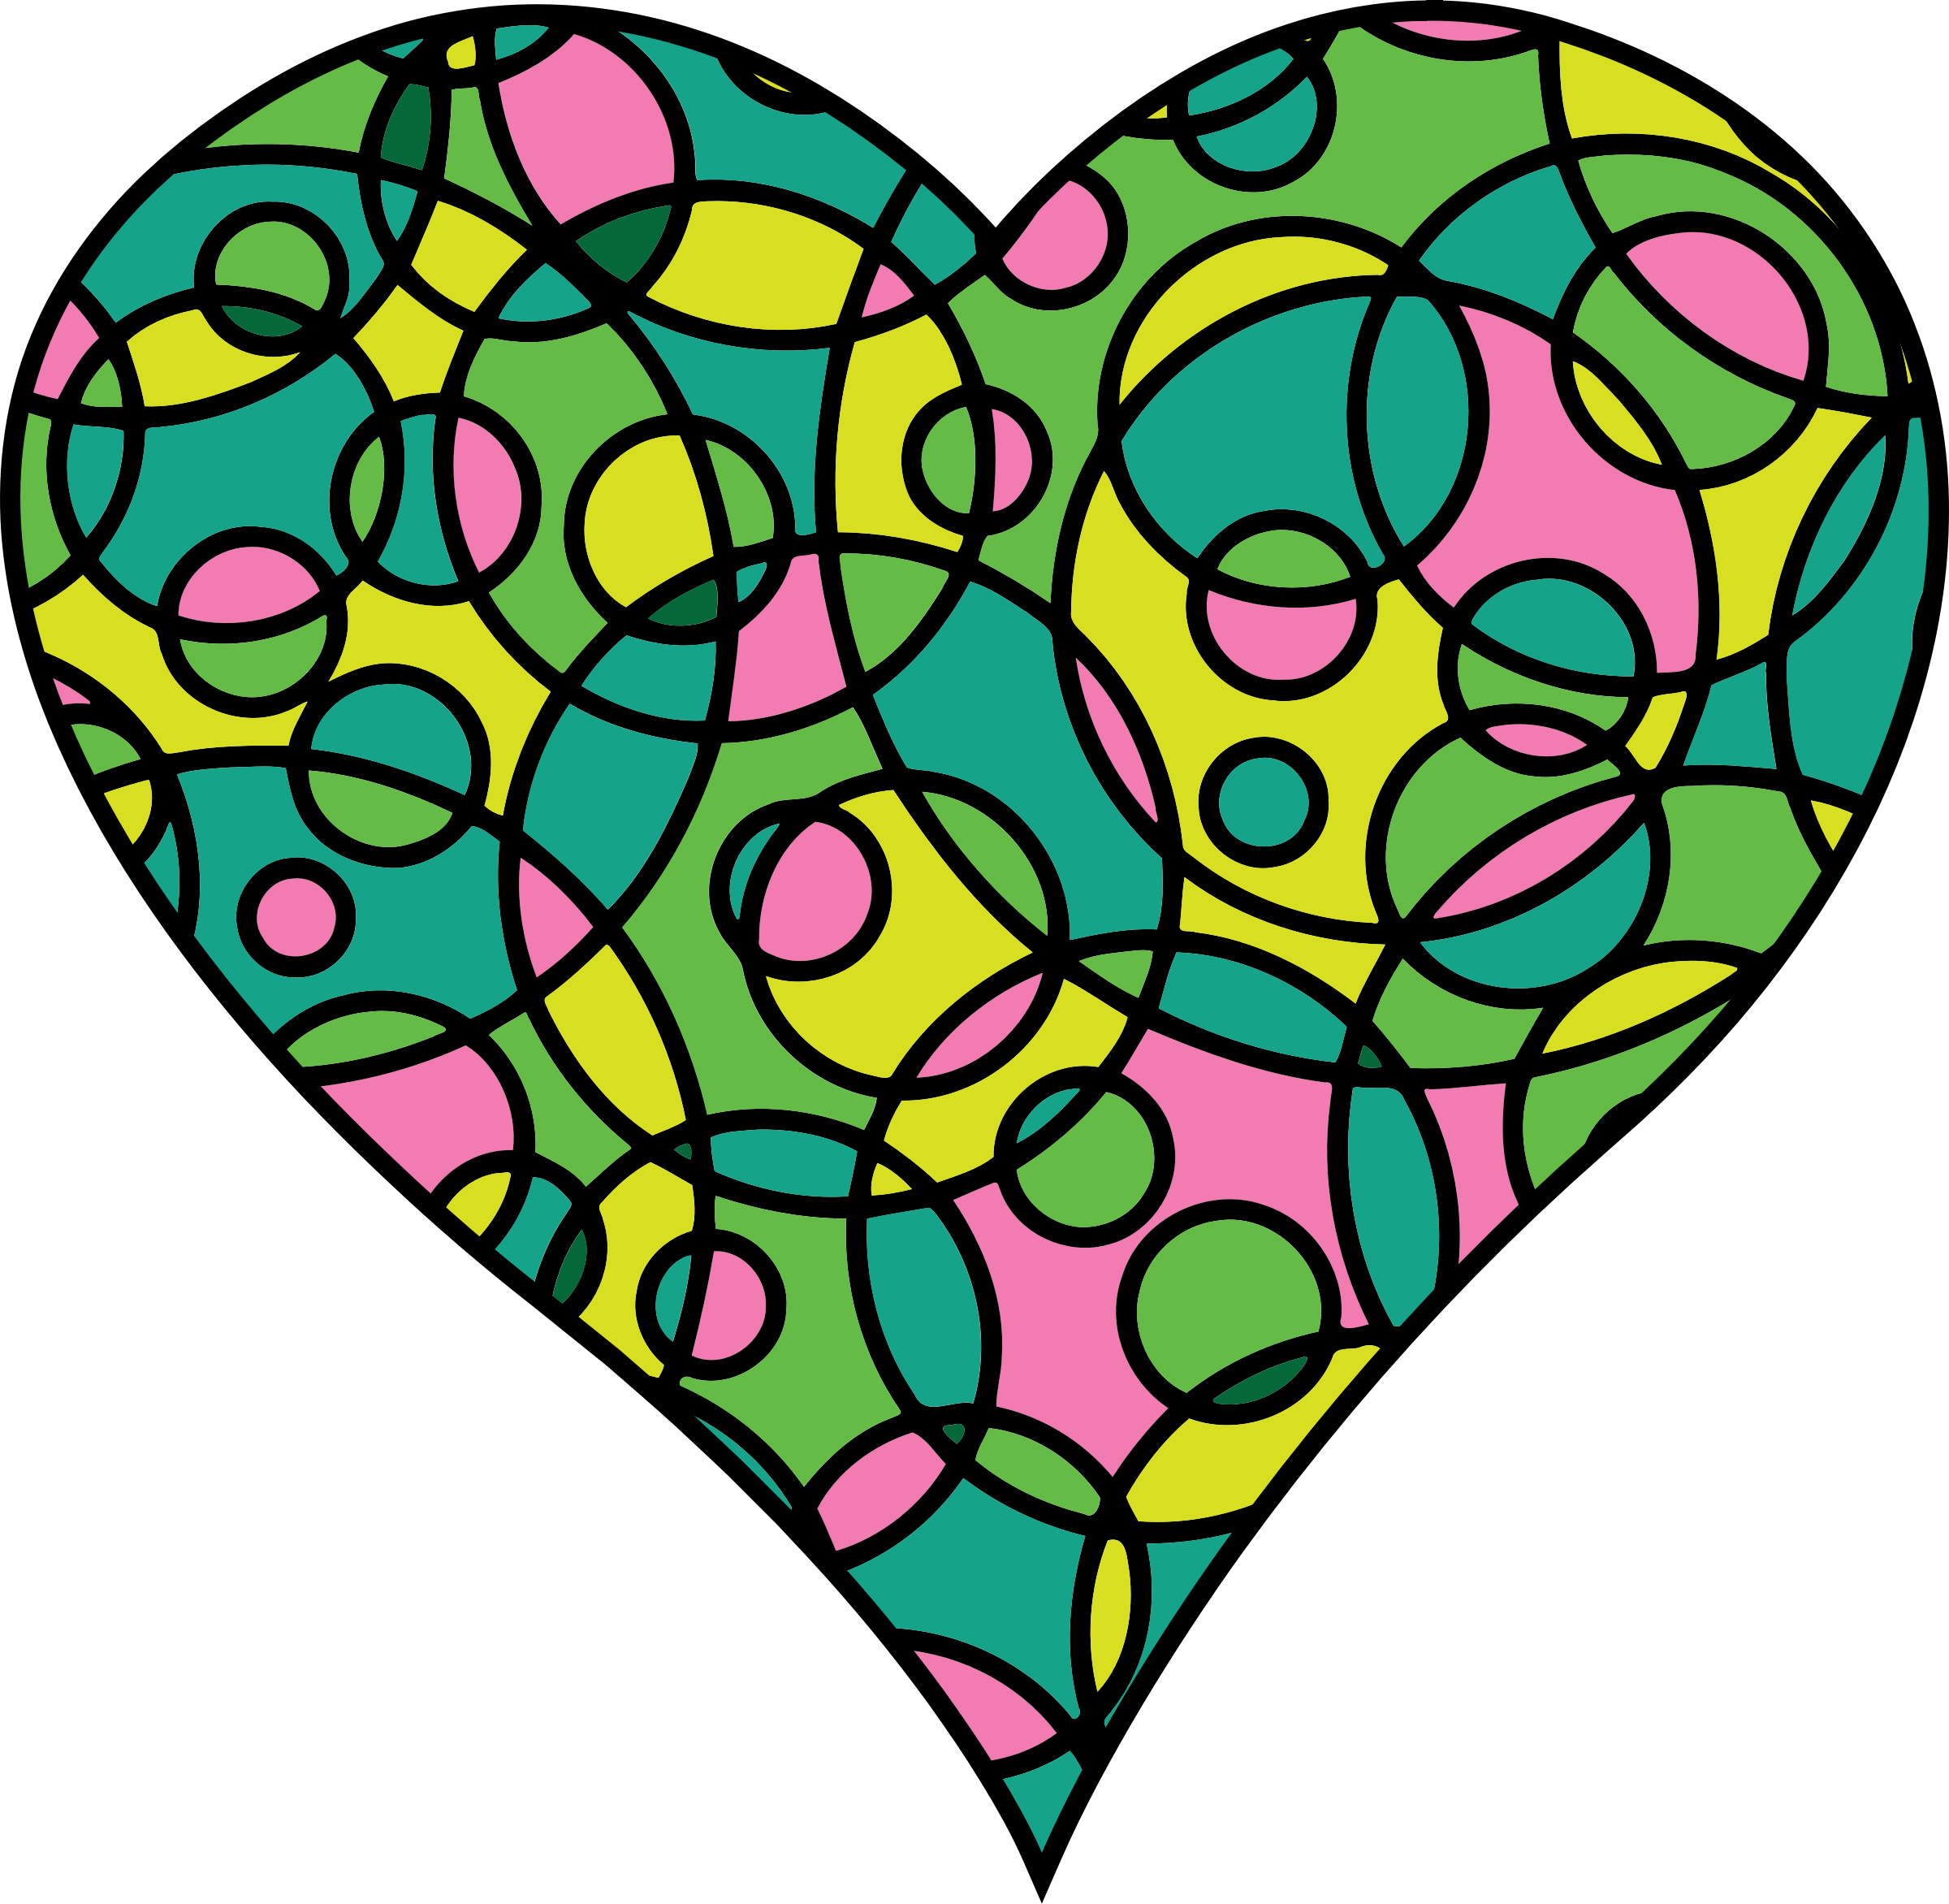 Patterned heart 22 by Firkin